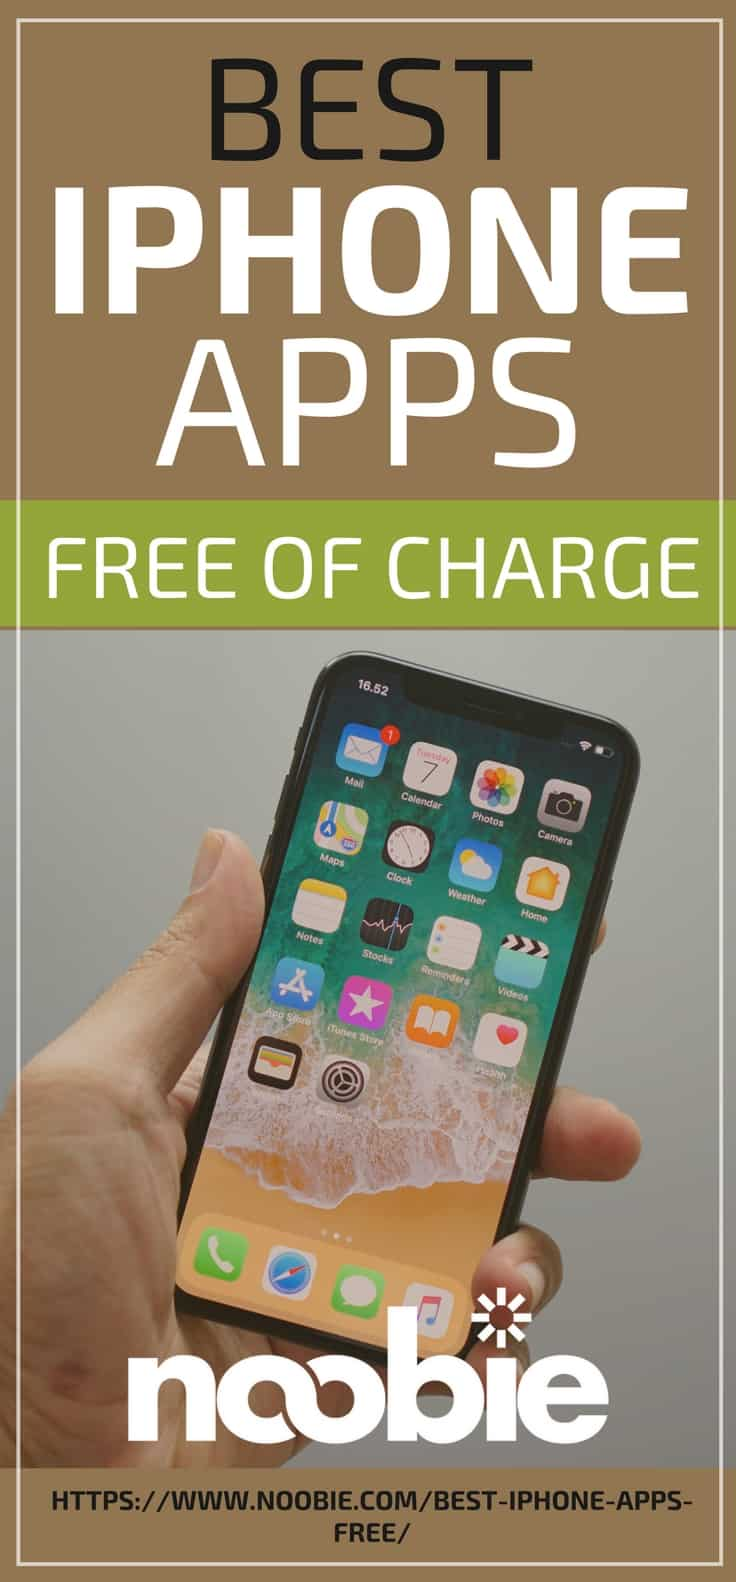 Best iPhone Apps Free Of Charge | top iphone apps | must-have iphone apps